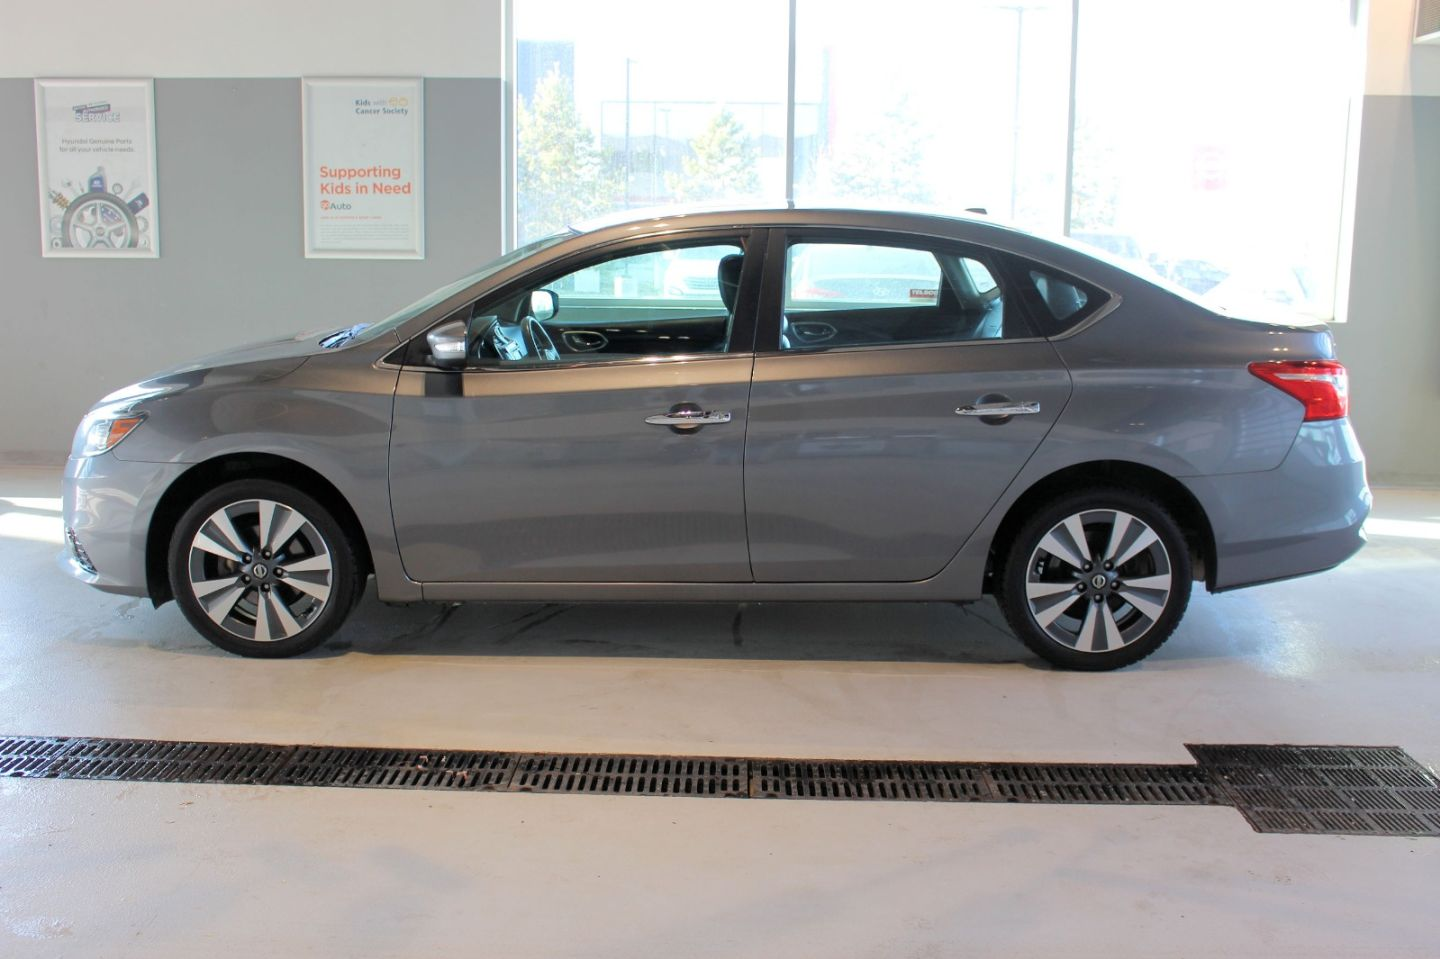 2017 Nissan Sentra SL for sale in Spruce Grove, Alberta